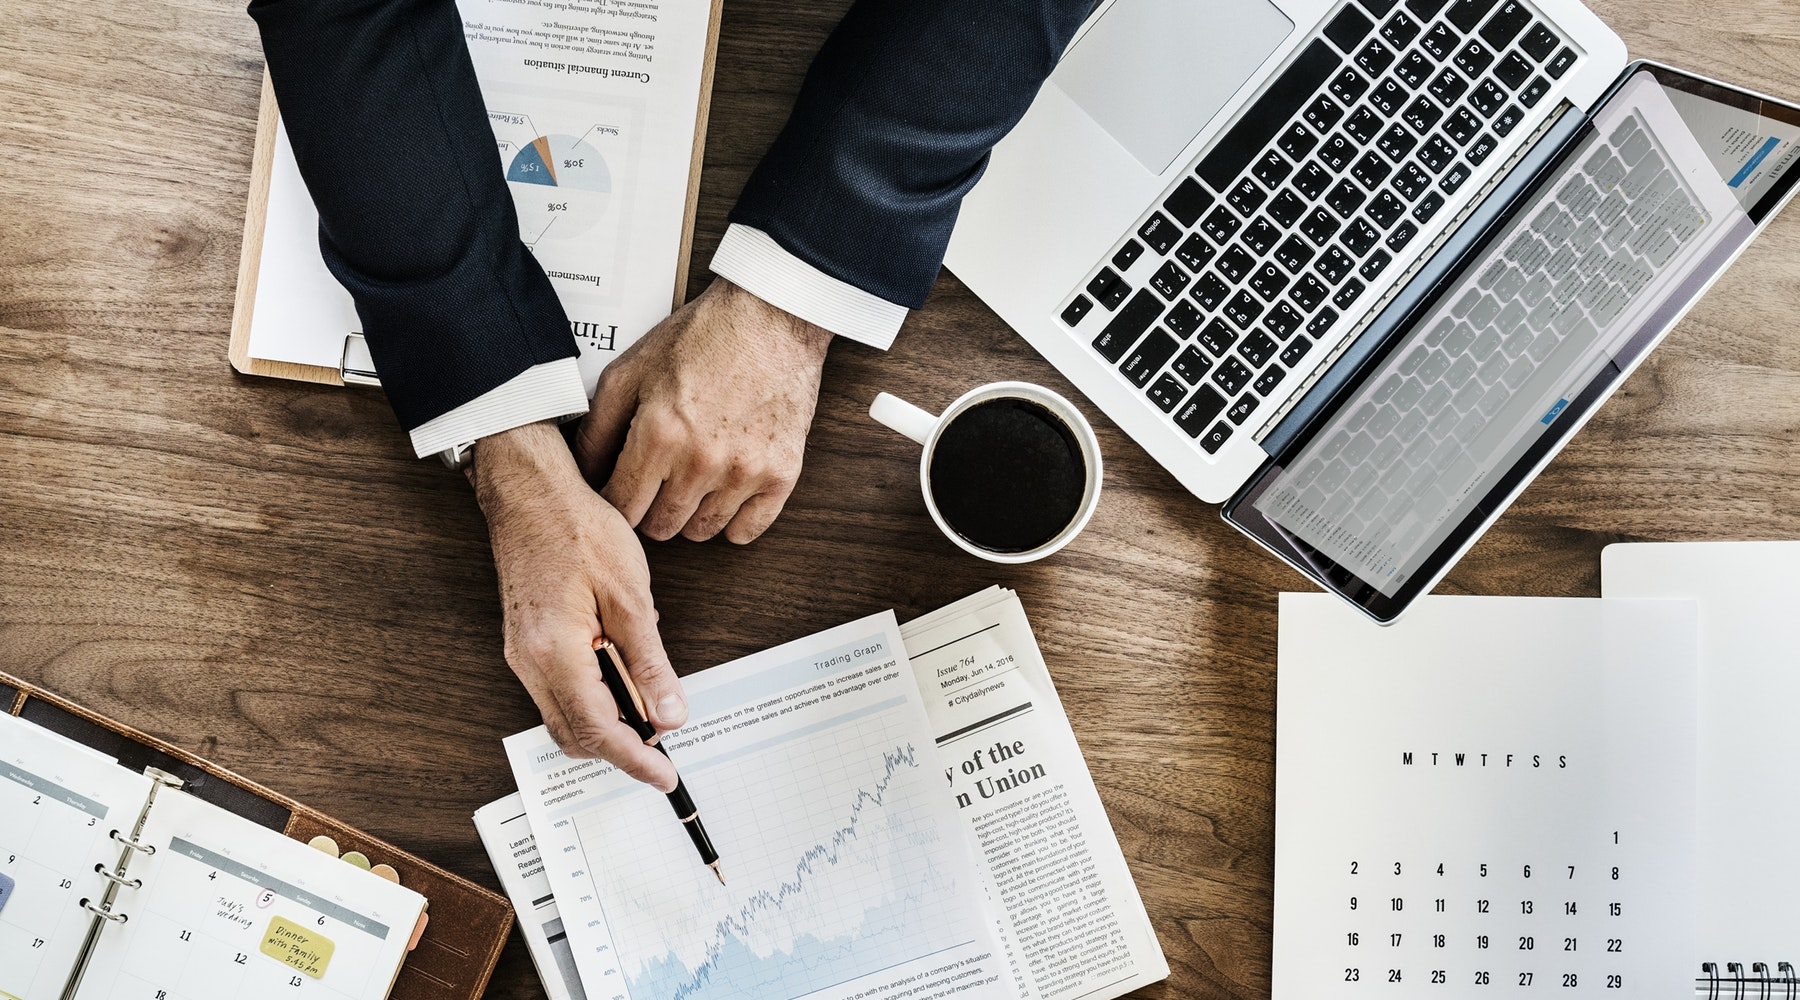 Stock Market Investing for Beginners [Free Course]